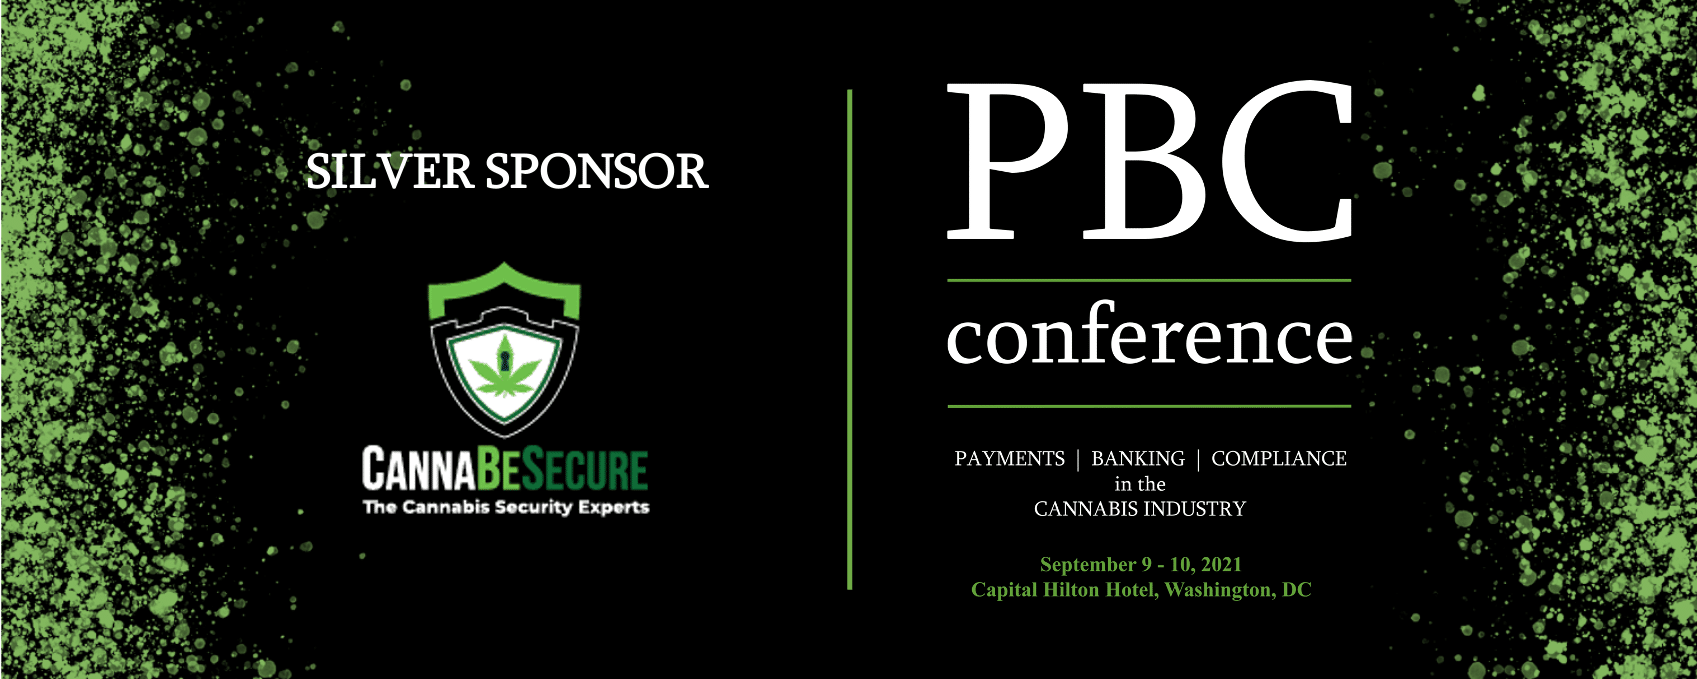 PBC Conference 2021: Payments, Banking, and Compliance